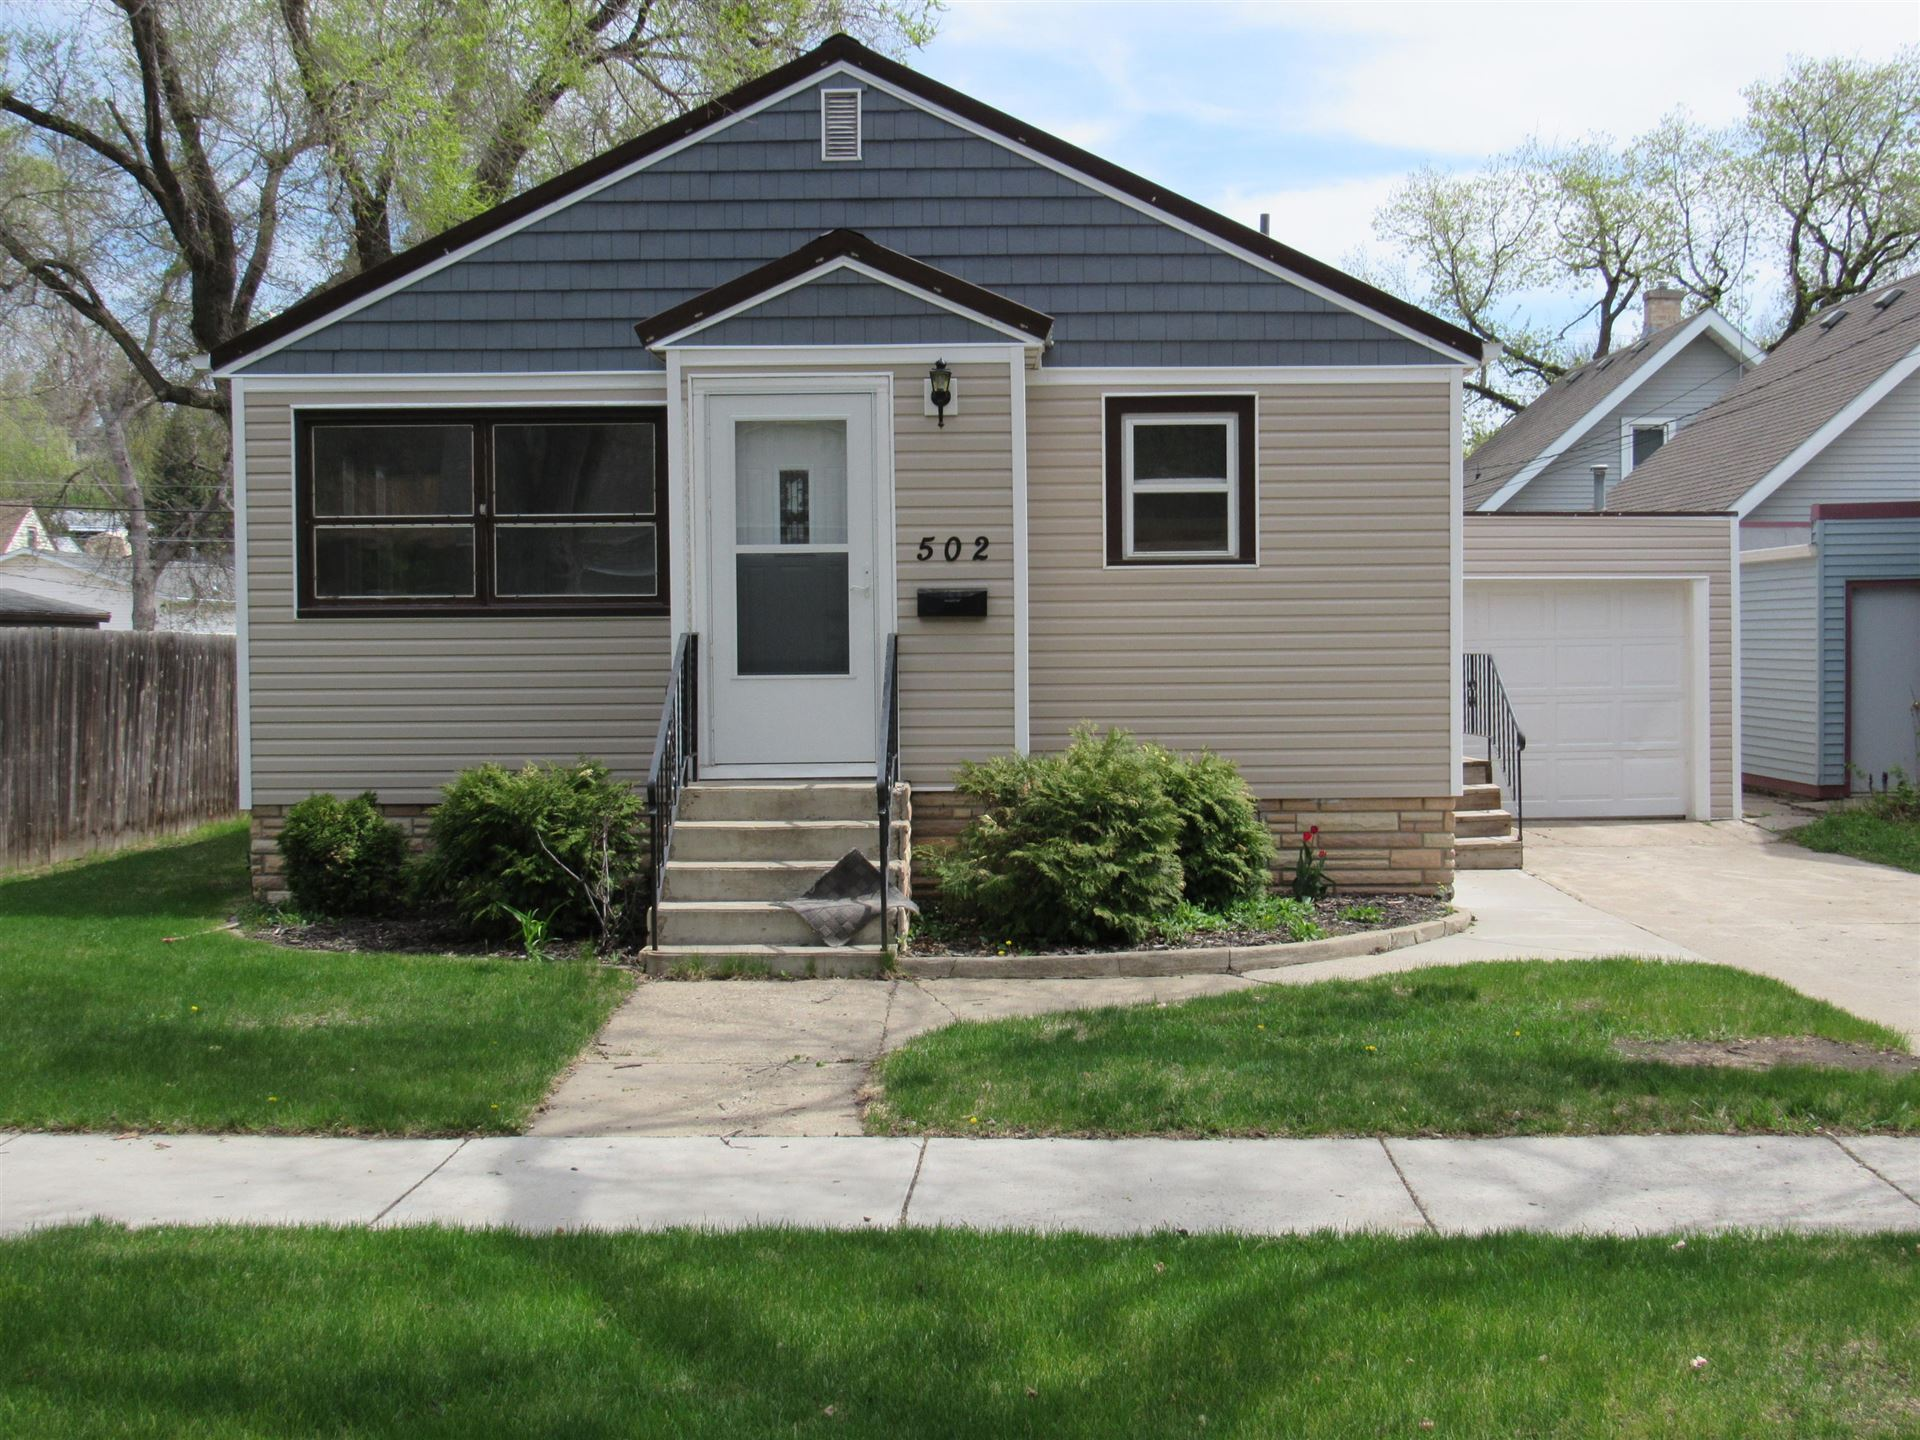 502 7th Avenue NW, Mandan, ND 58554 - #: 405172